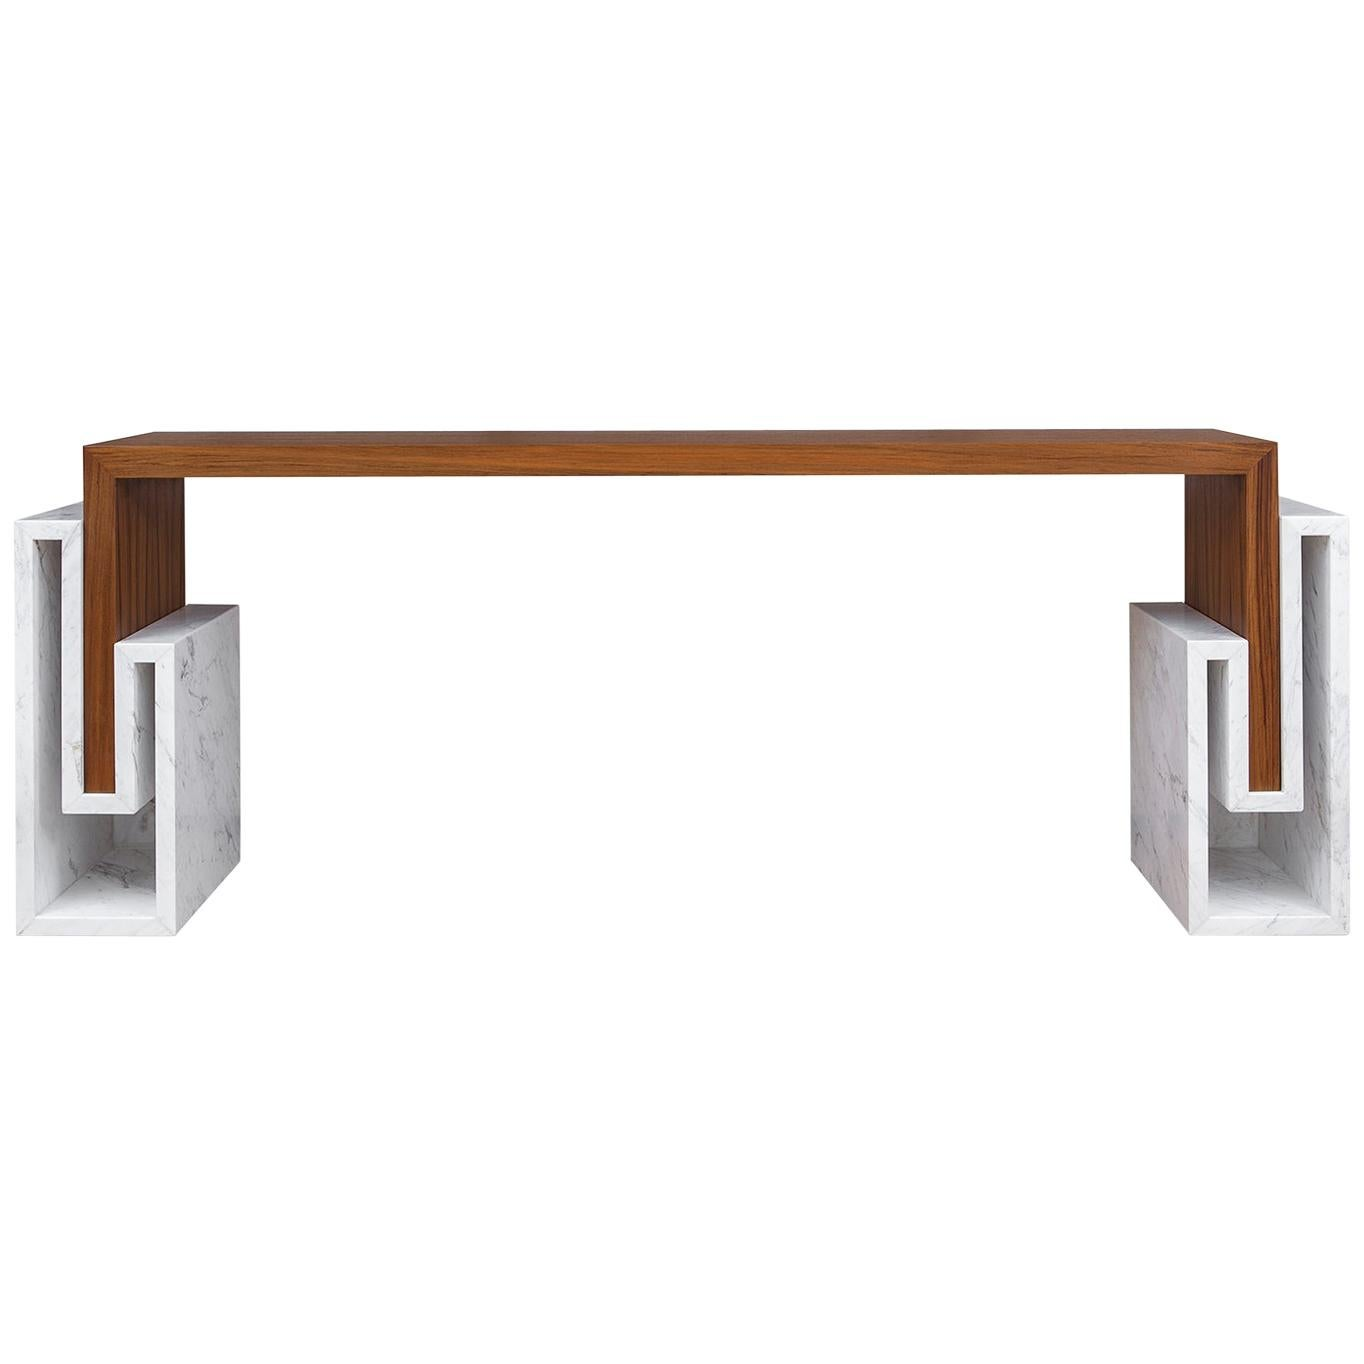 """Contemporary Handcrafted Console """"Alke"""" in Wood with Marble Pedestals by Anaktae"""